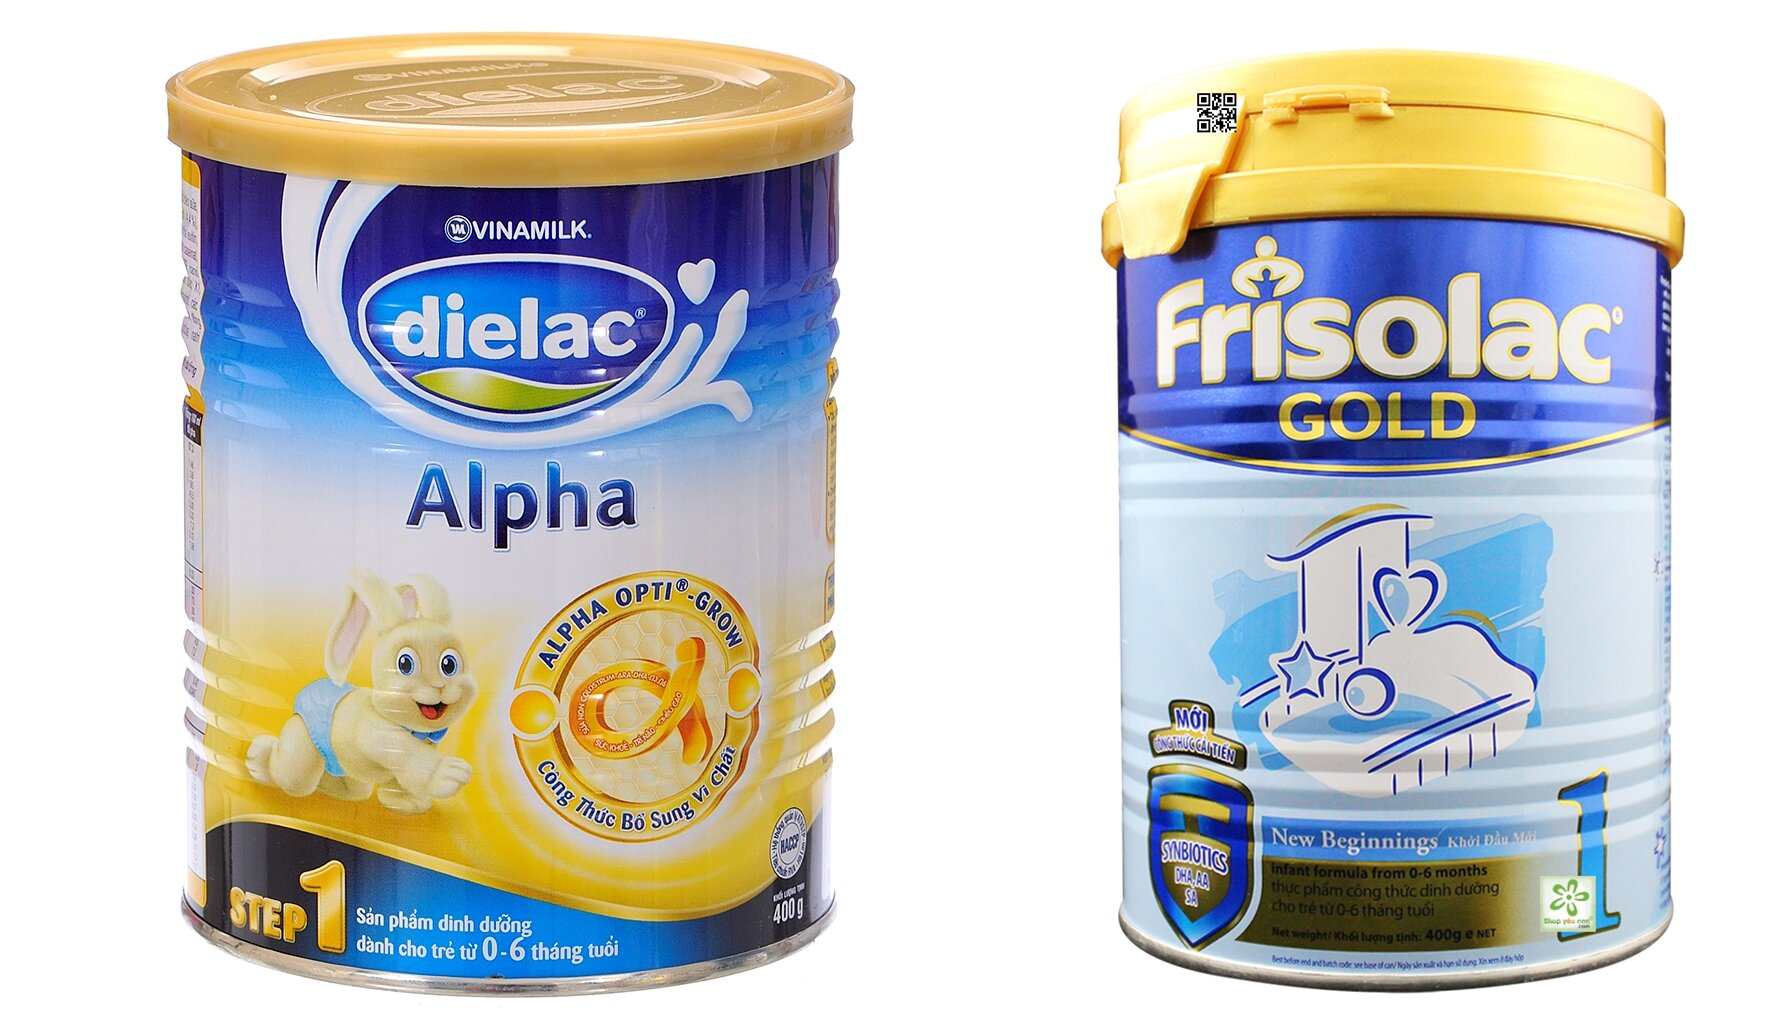 Frisolac Gold 2 400gr Nhng L Do M Nn Chn Sa Bt 1 Cho Tr T 0 N 6 So Snh Dielac Alpha Step V B